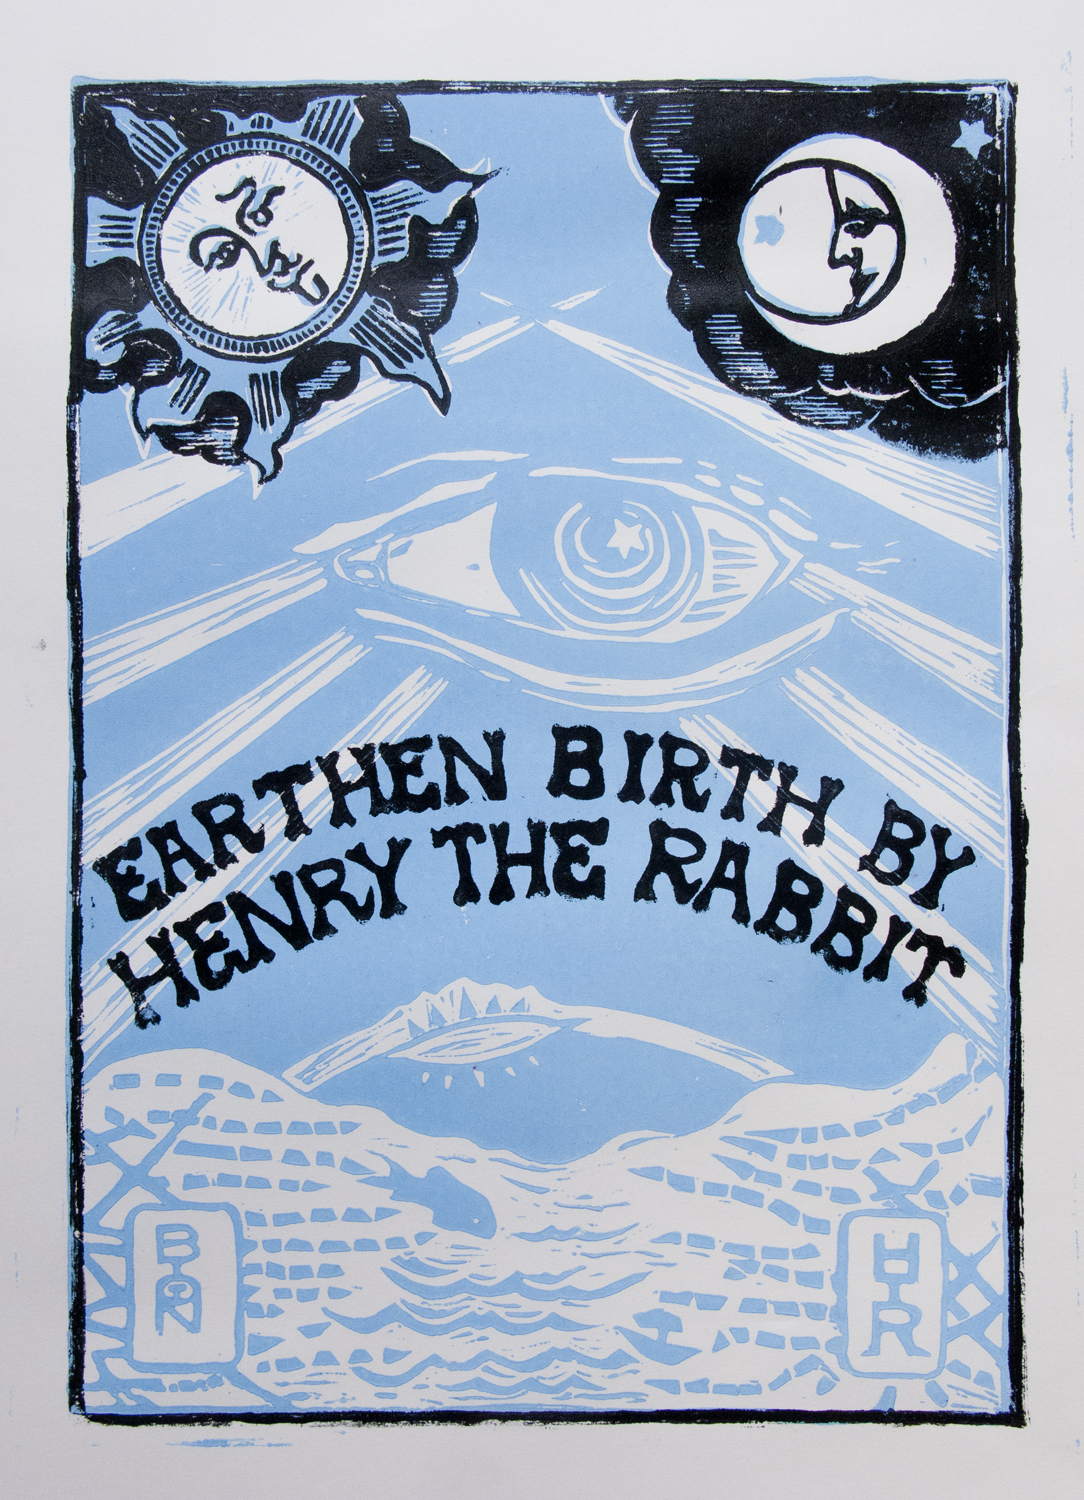 Earthen Birth By Henry the Rabbit